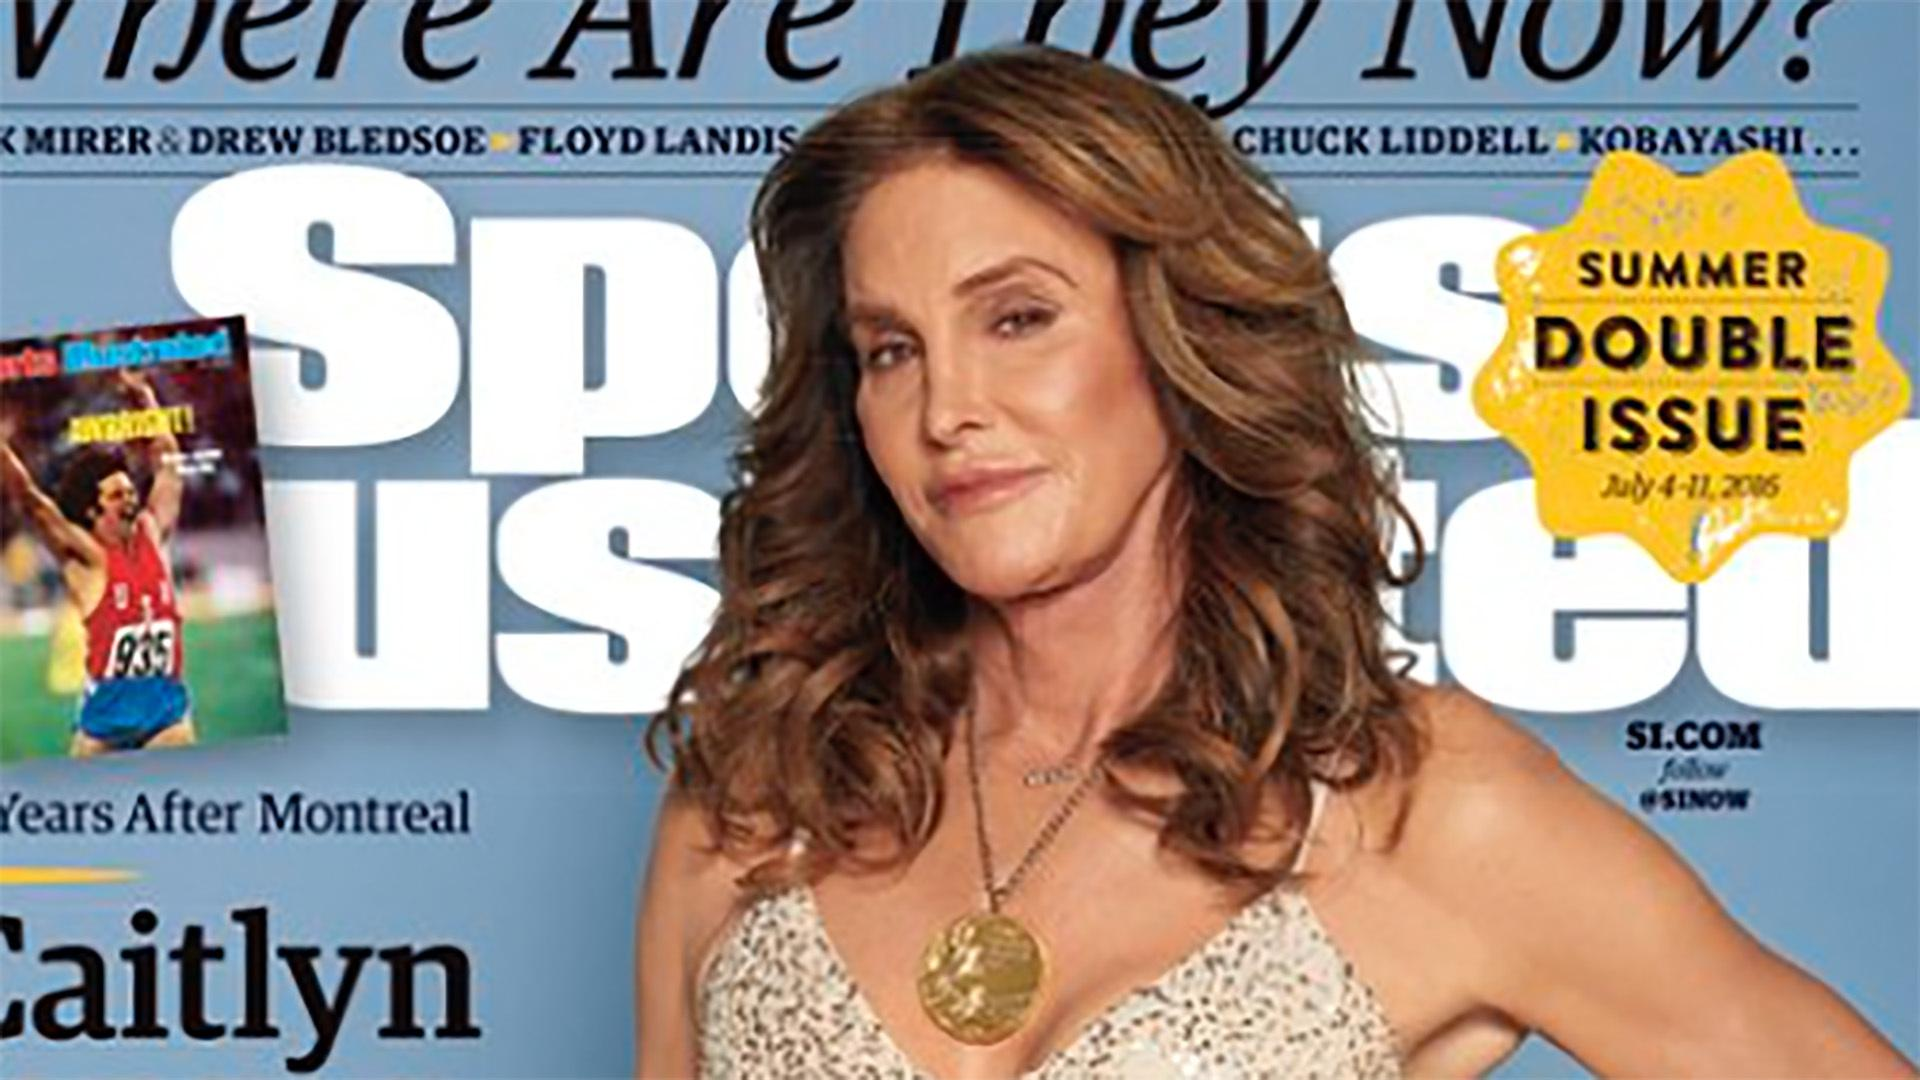 Caitlyn Jenner Poses on Cover of Sports Illustrated with Gold Medal